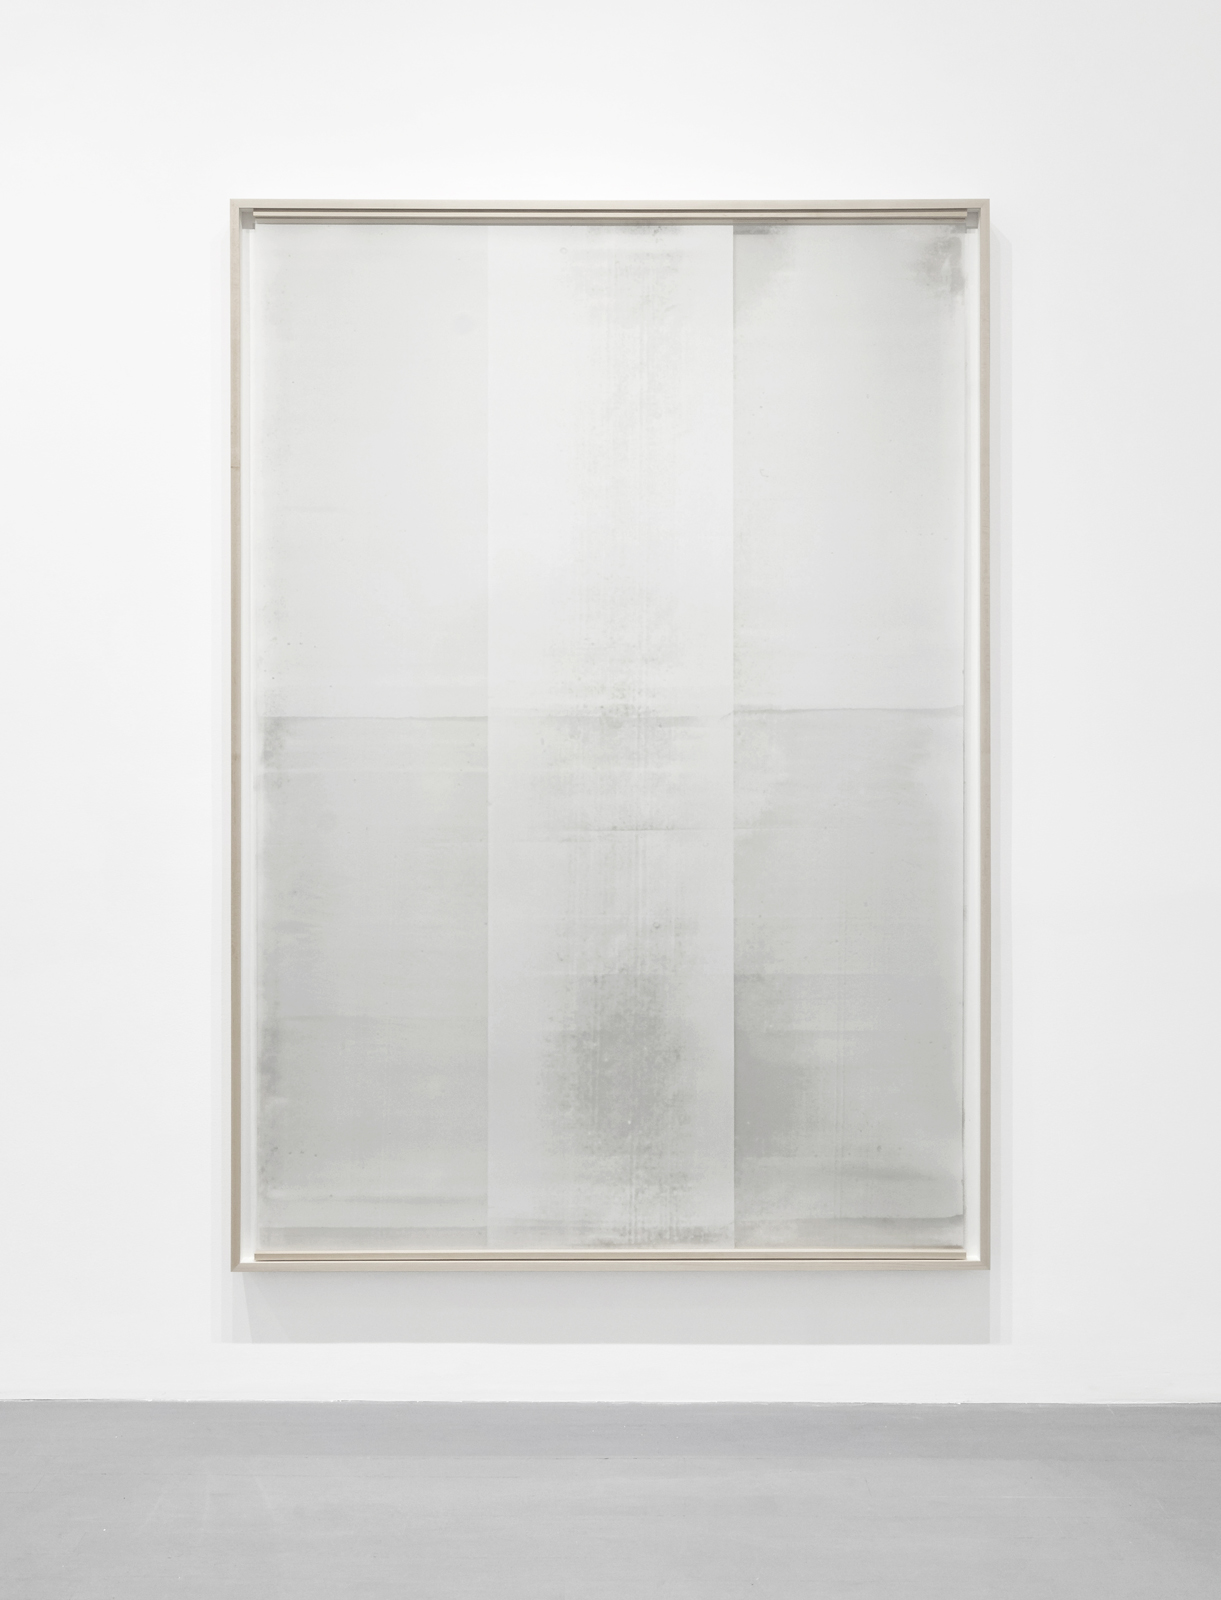 Untitled  (from the series  An Accurate Silence ), 2017 Oil based paint on clouded mylar suspended in front of acrylic on cotton paper, 71 x 51 inches (framed)